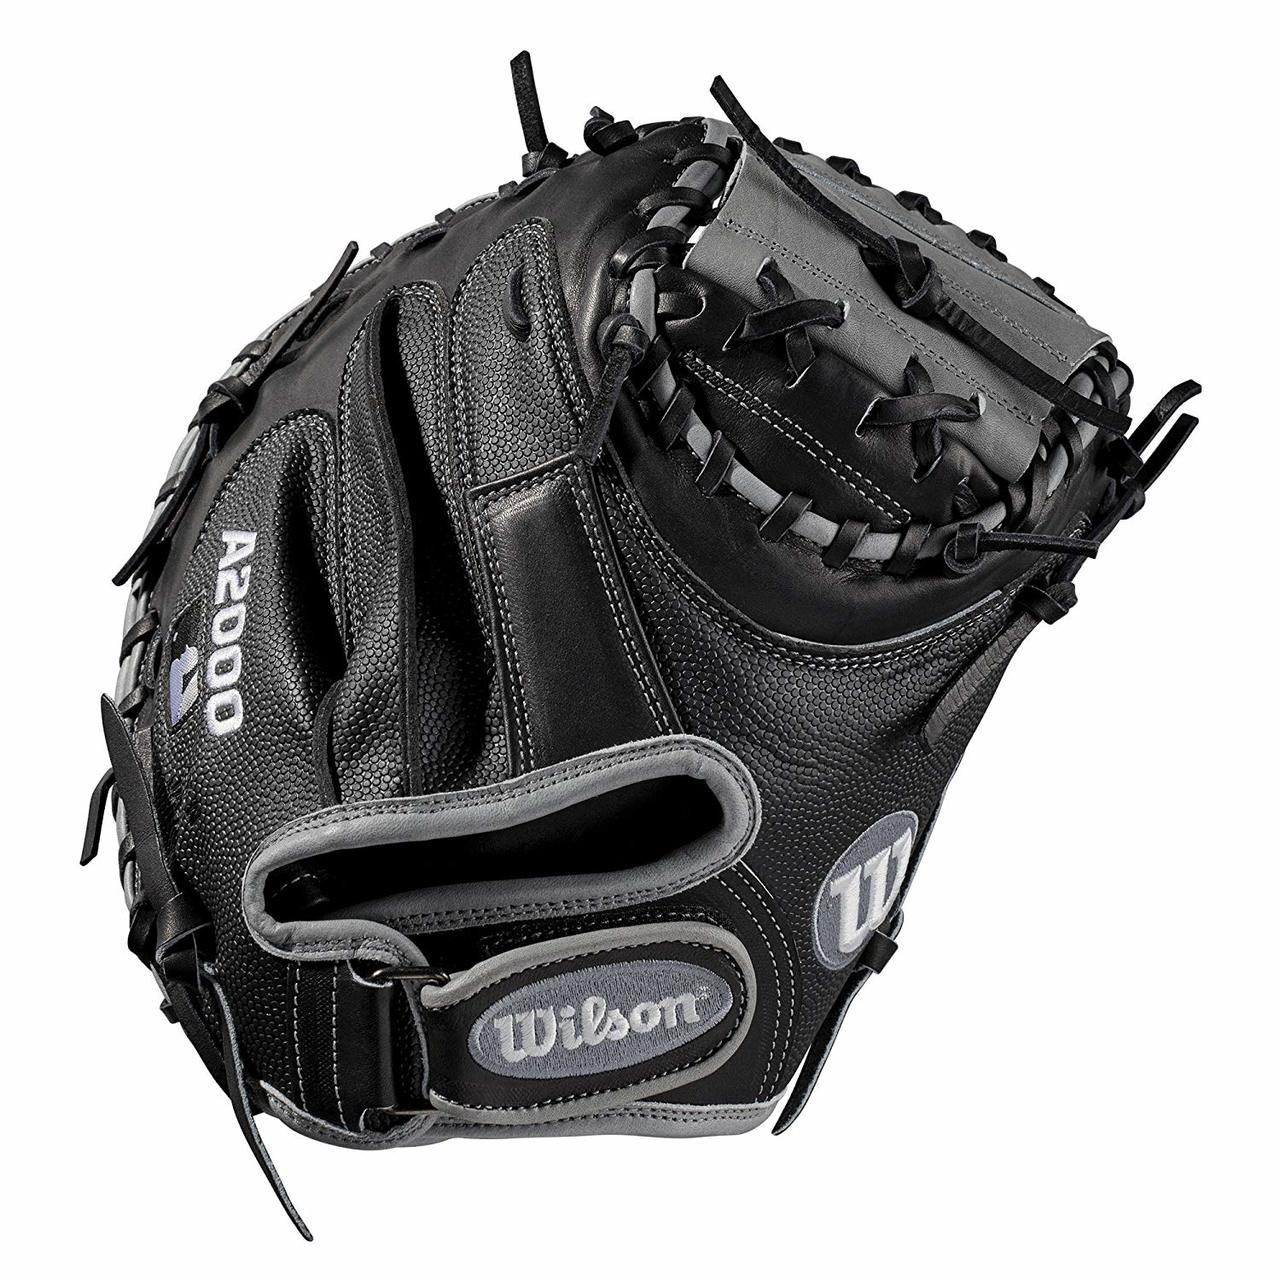 wilson-a2000-1790ss-catchers-mitt-2019-right-hand-throw-34 WTA20RB191790SS-RightHandThrow Wilson 887768702052 Catchers model; half moon web; extended palm Velcro wrist strap for